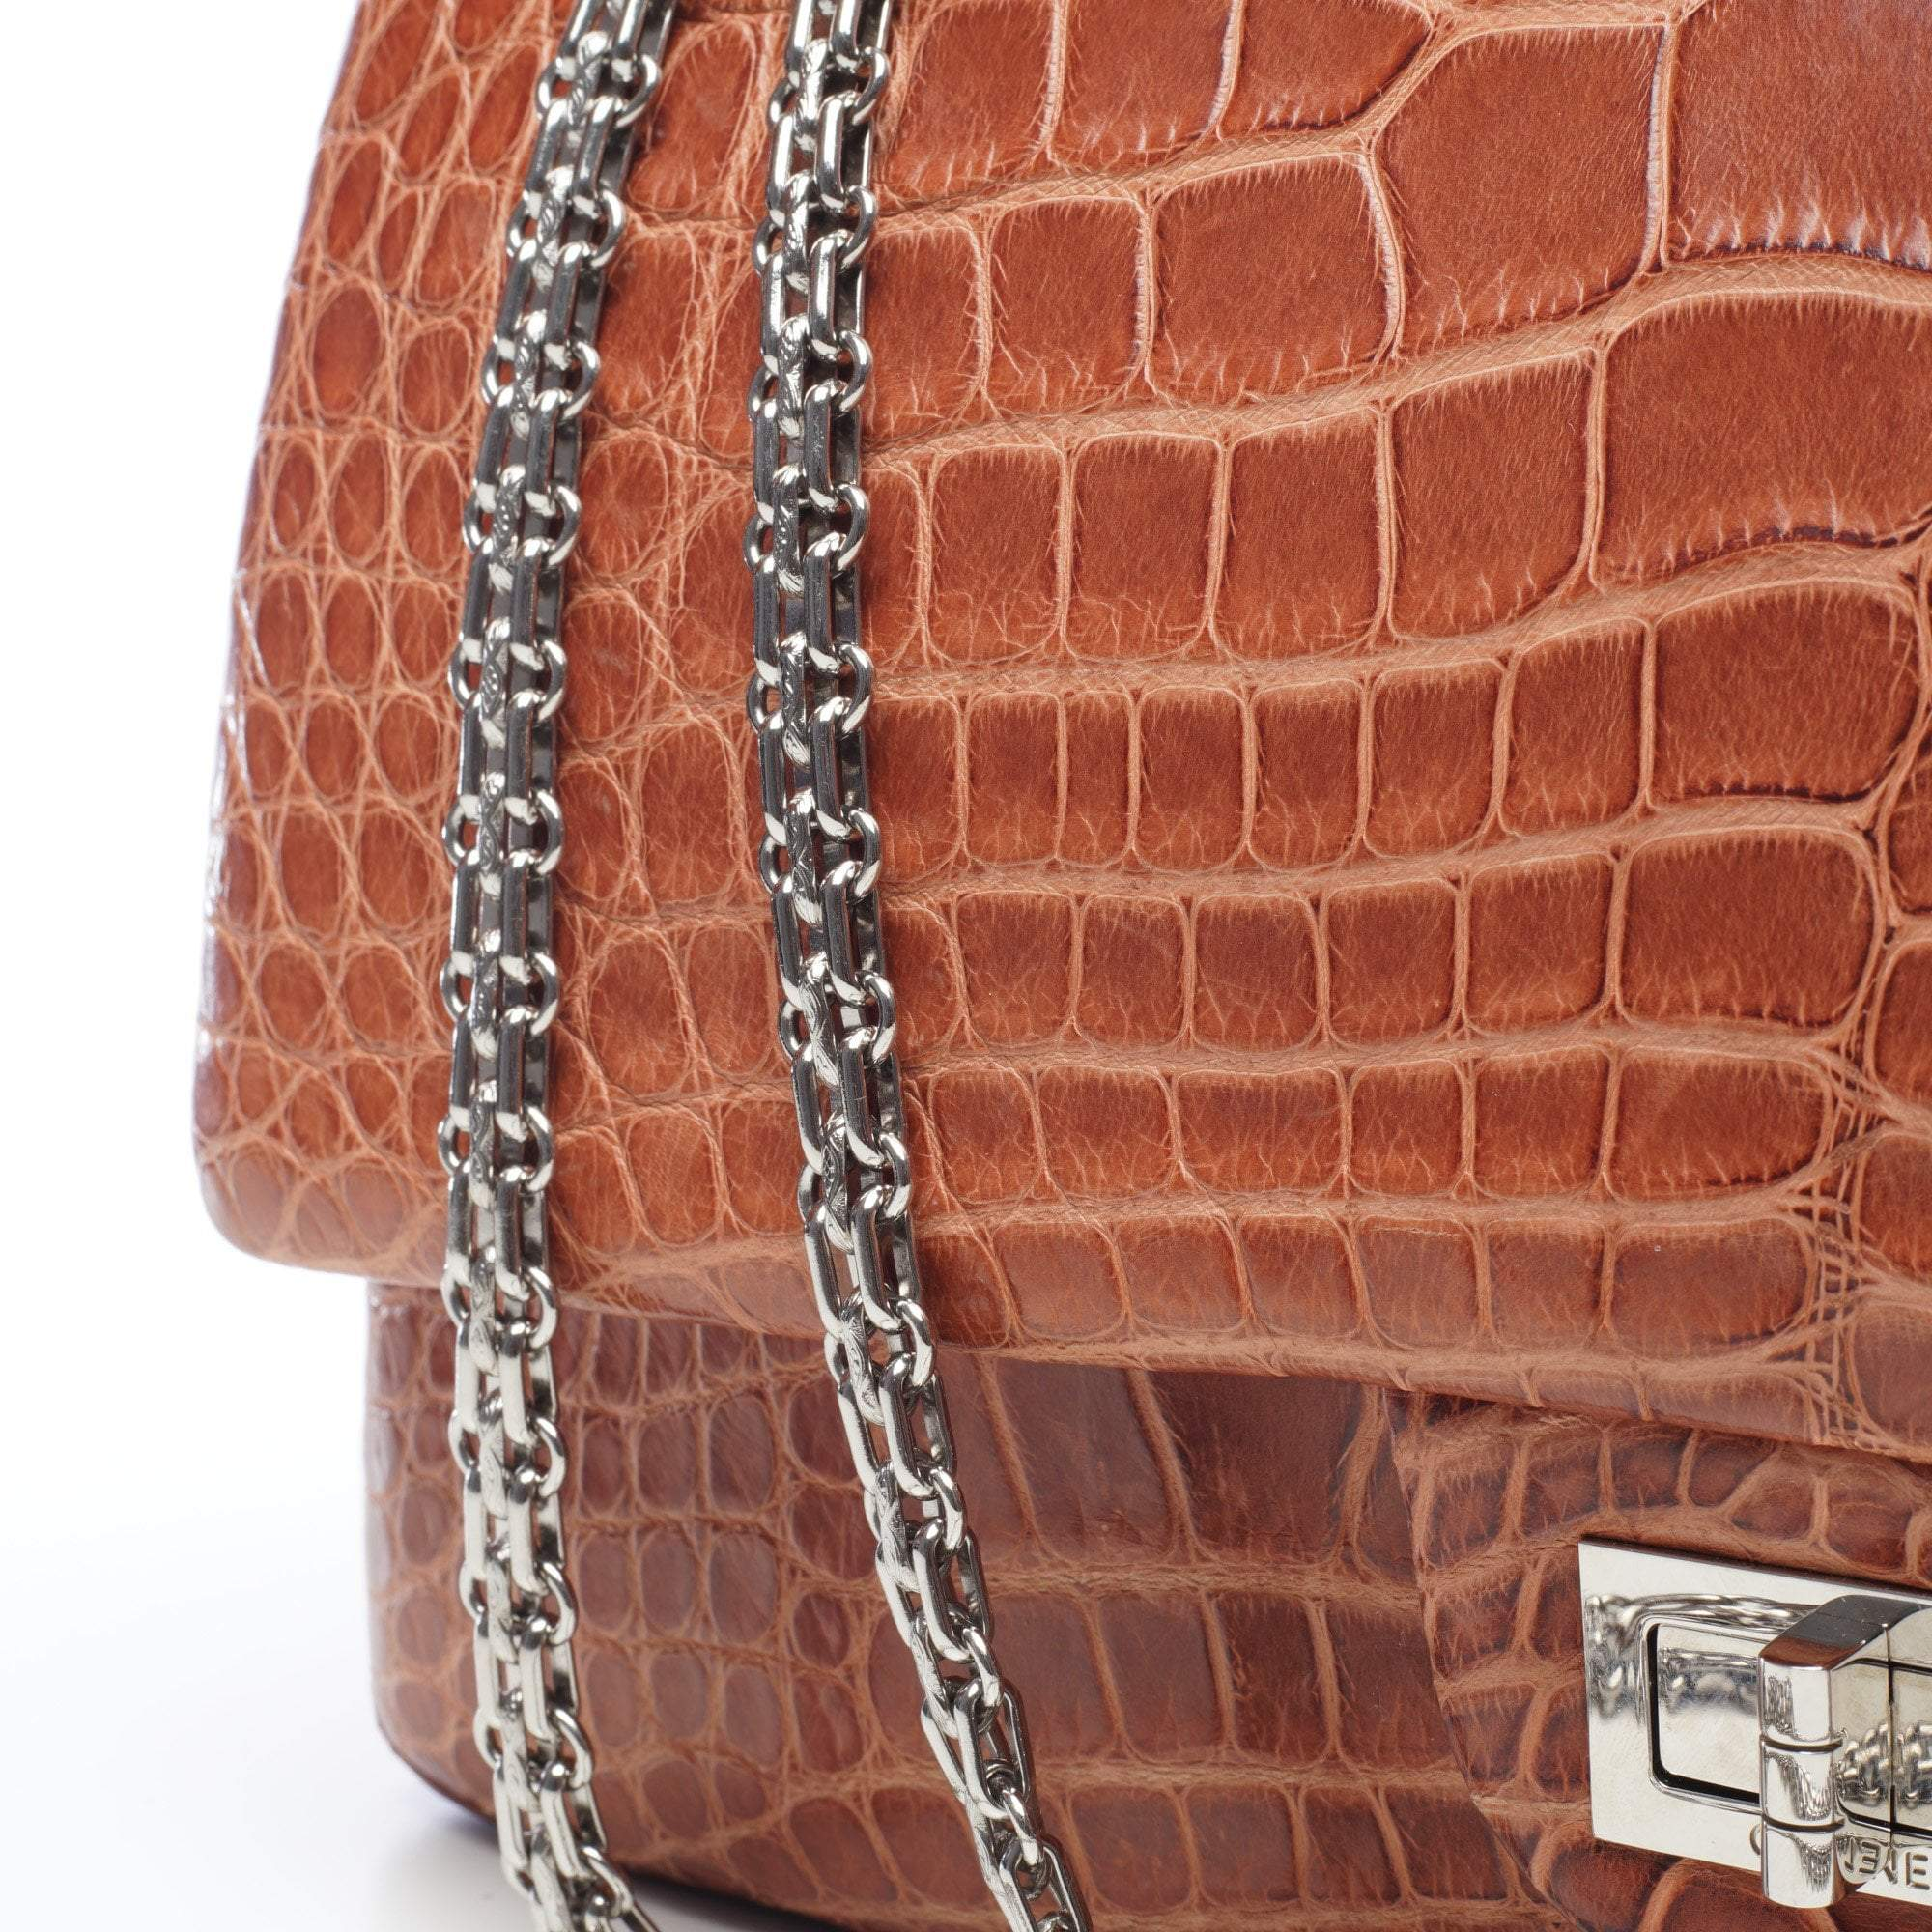 Chanel 2.55 Reissue 227 Brown Alligator Double Flap Bag